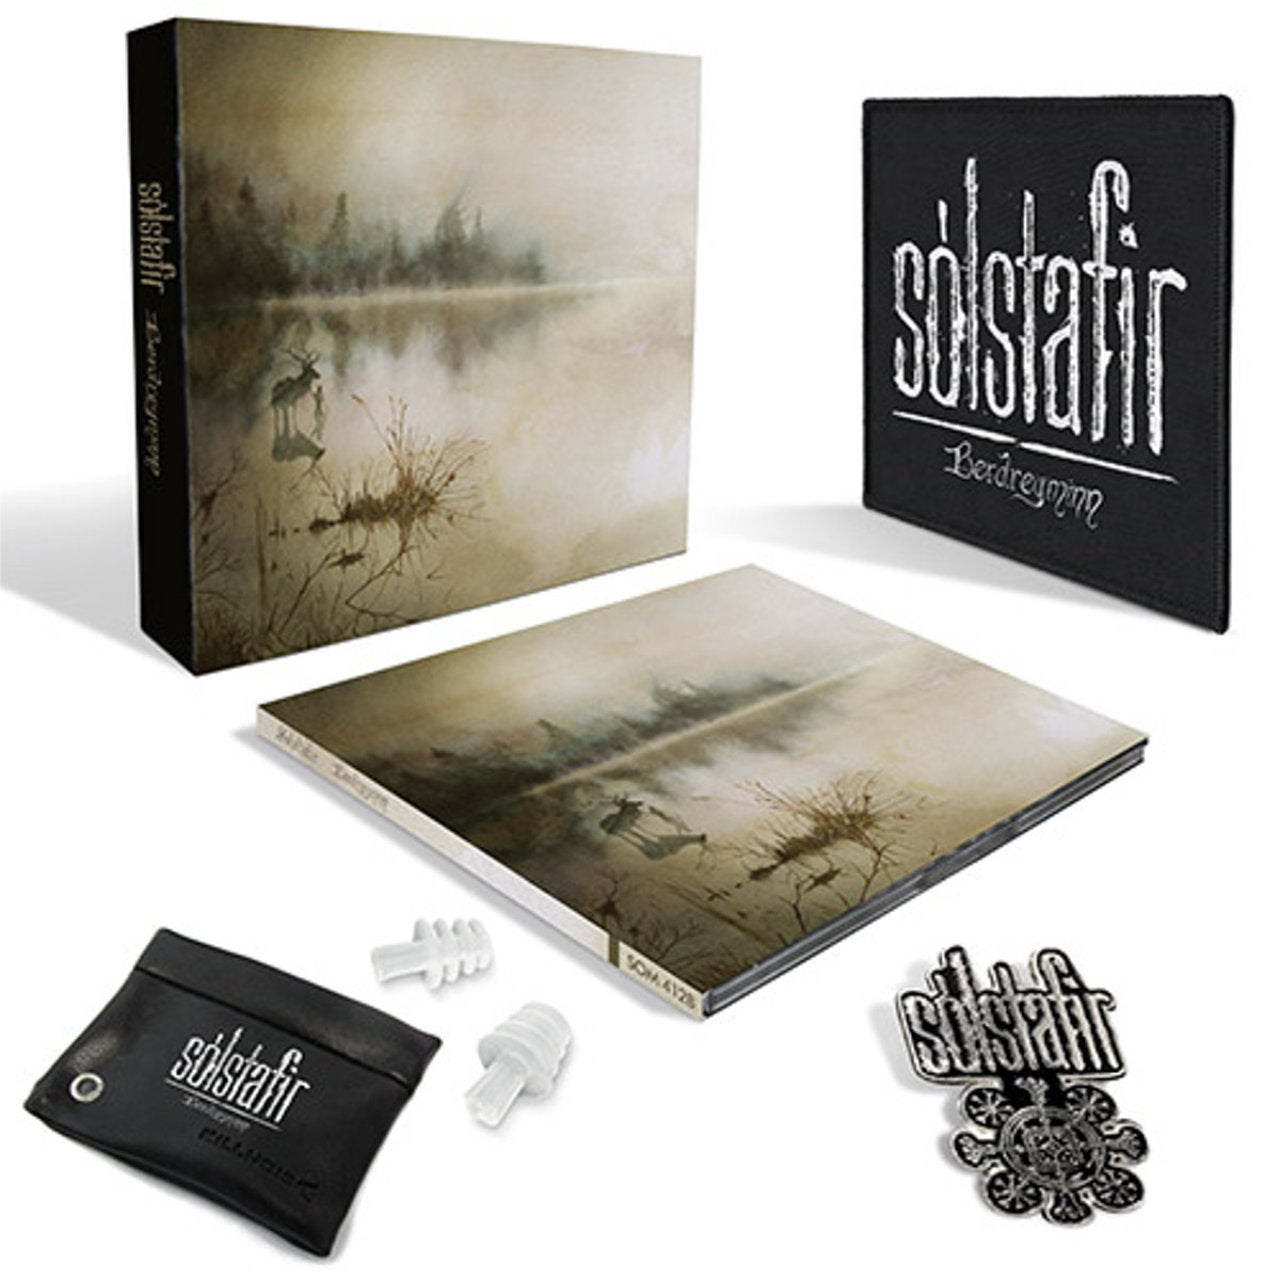 Solstafir - Berdreyminn (Deluxe Box Edition) (CD)